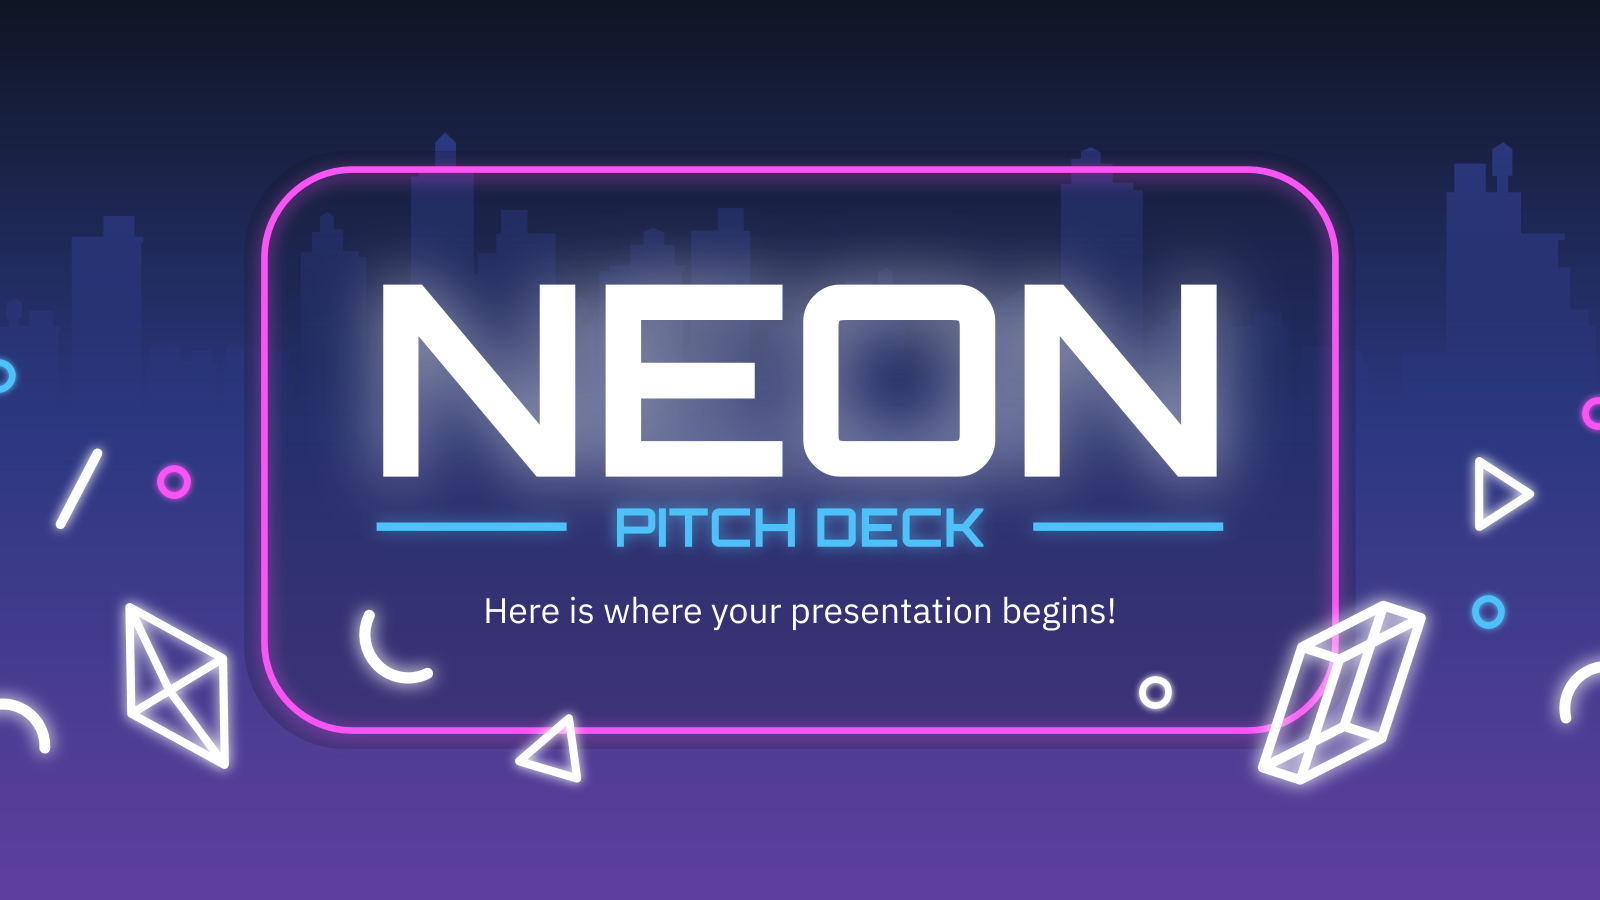 Neon Pitch Deck presentation template